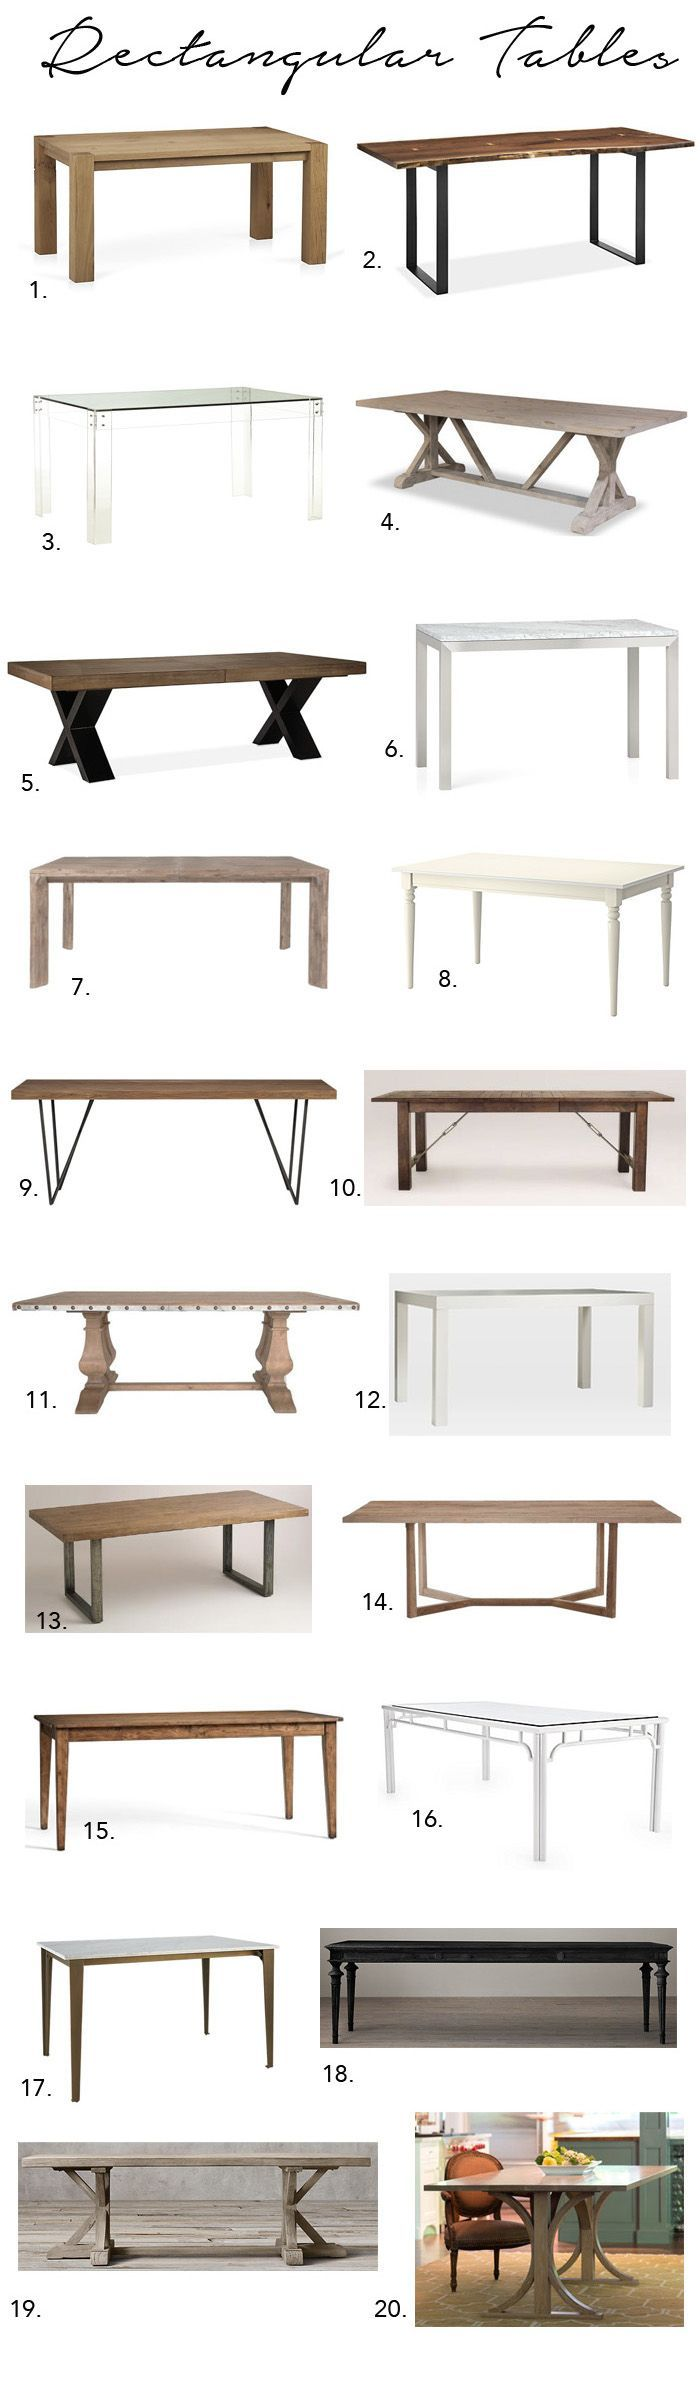 awesome A Huge Dining Table Roundup! - Elements of Style Blog by http://www.top-homedecorideas.space/dining-tables/a-huge-dining-table-roundup-elements-of-style-blog/